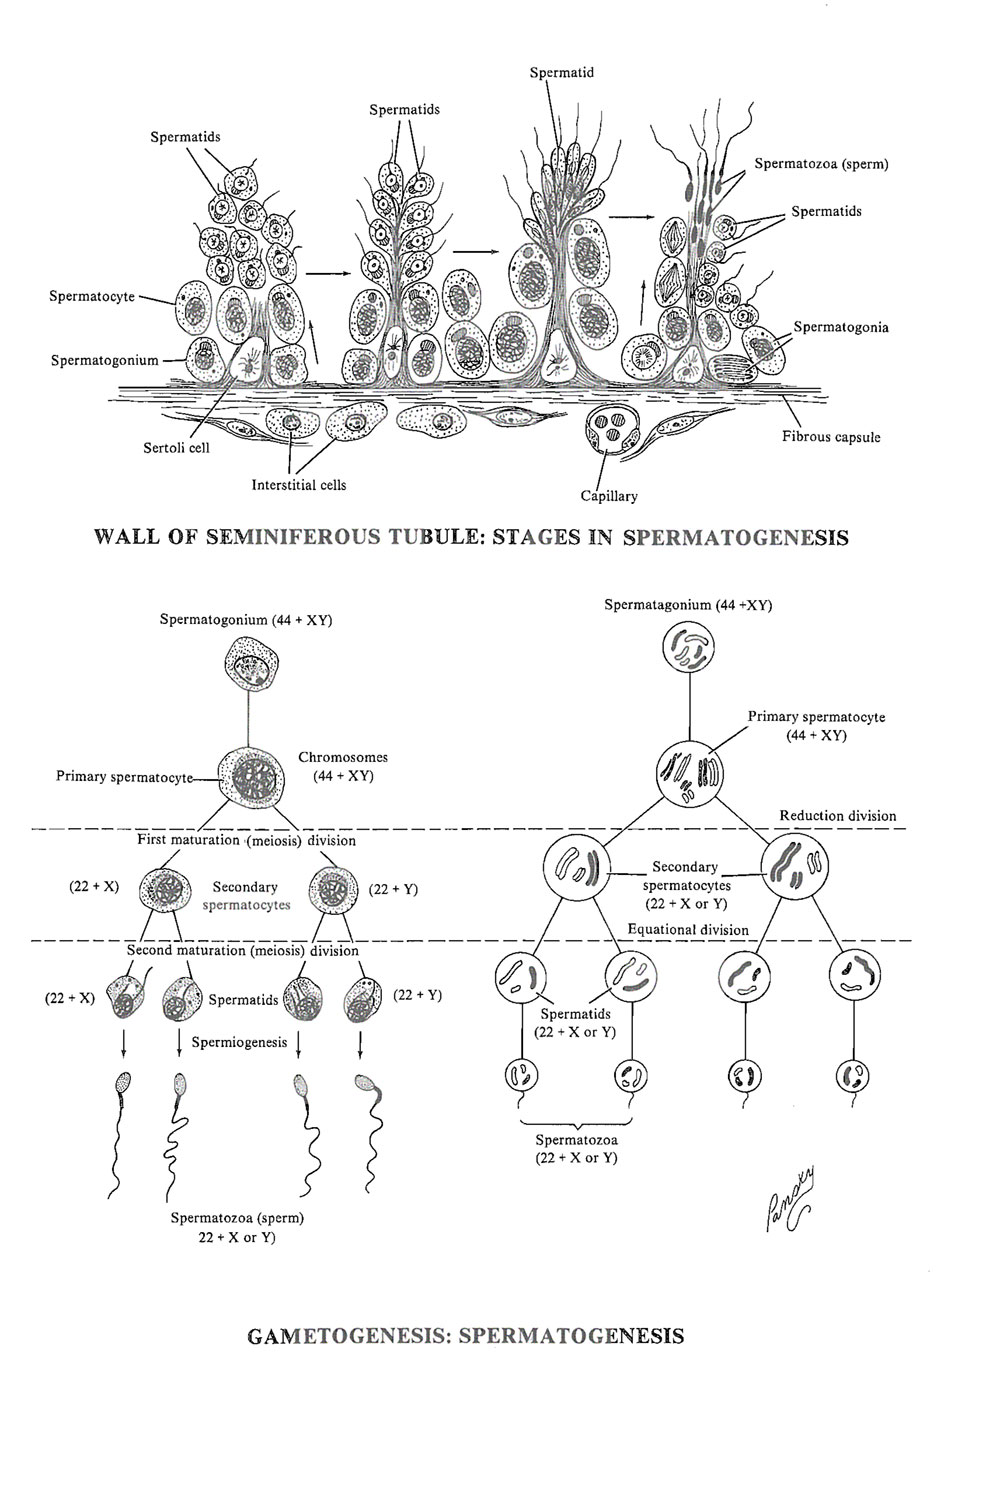 gamete (germ cell) formation, or gametogenesis: spermatogenesis: image #1